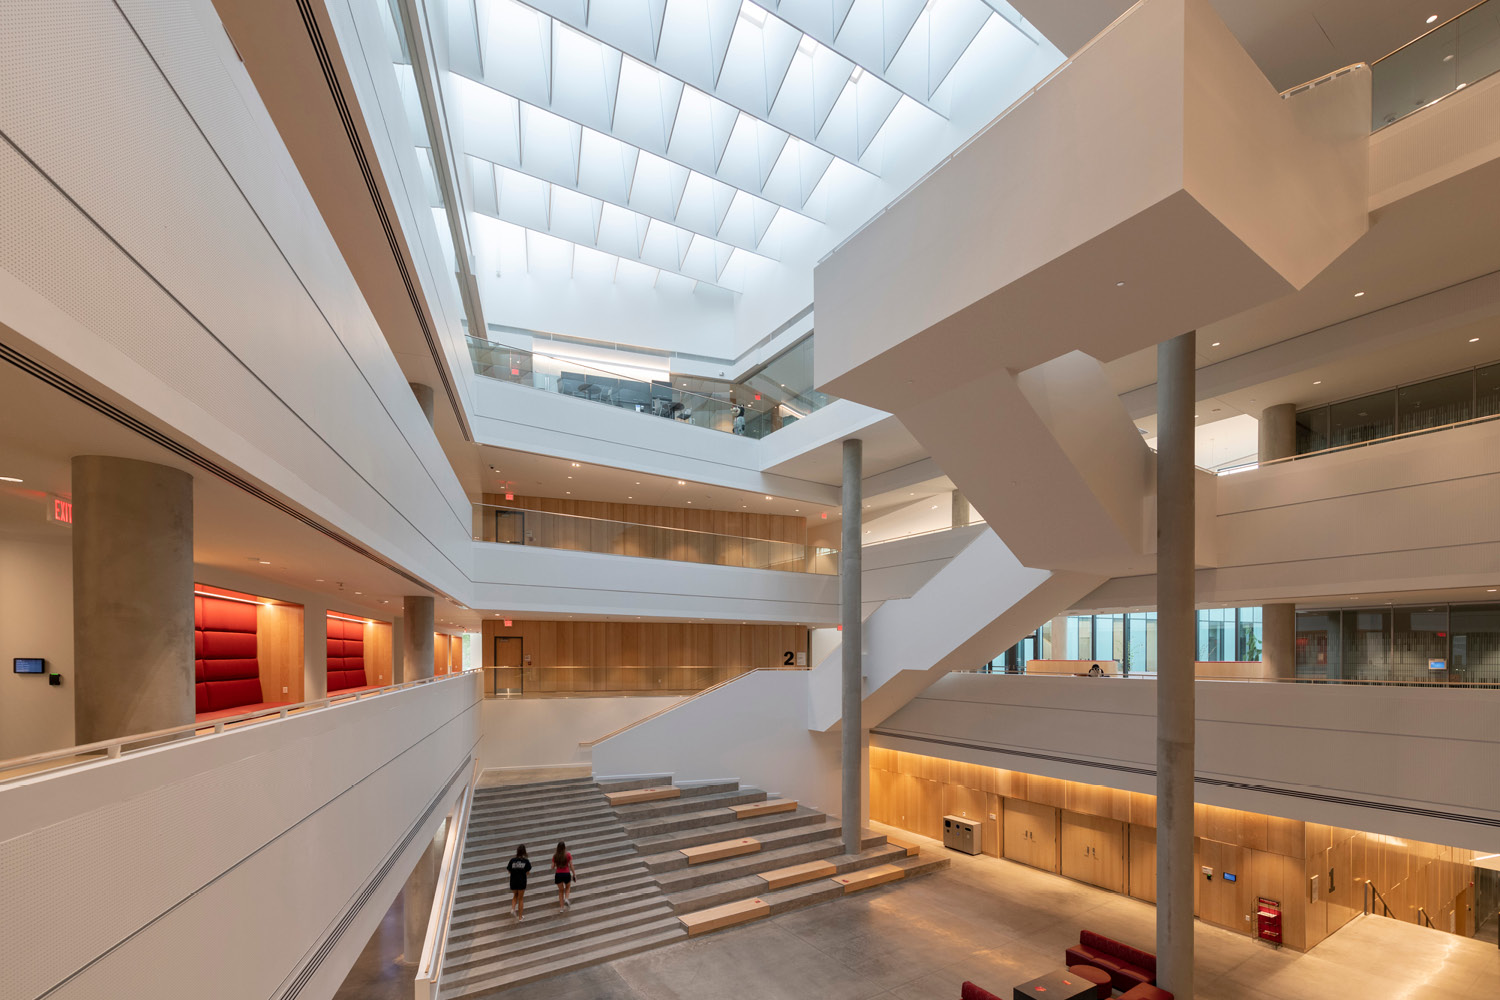 University of Cincinnati Lindner College of Business' 4-story open lobby atrium